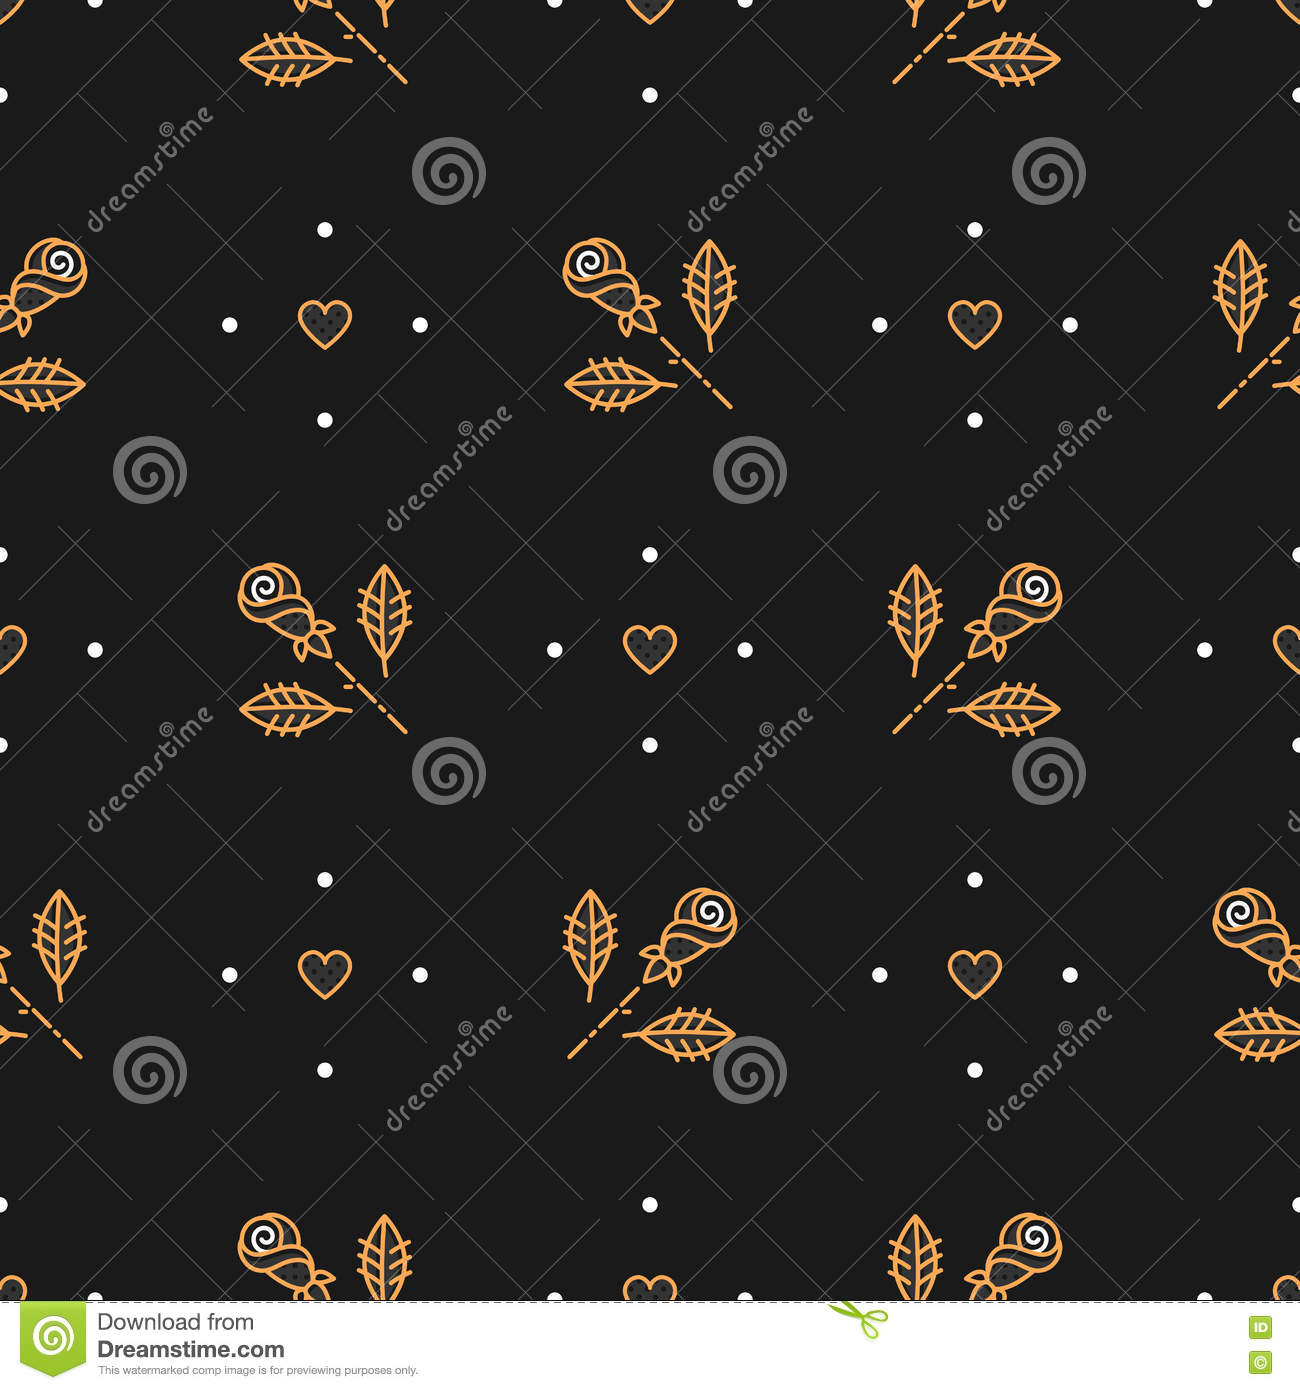 2ed1209e1887 Thin line art seamless pattern of gold roses and hearts on a dark  background. Elegant minimal design floral ornament. Cover template or  invitation card in ...